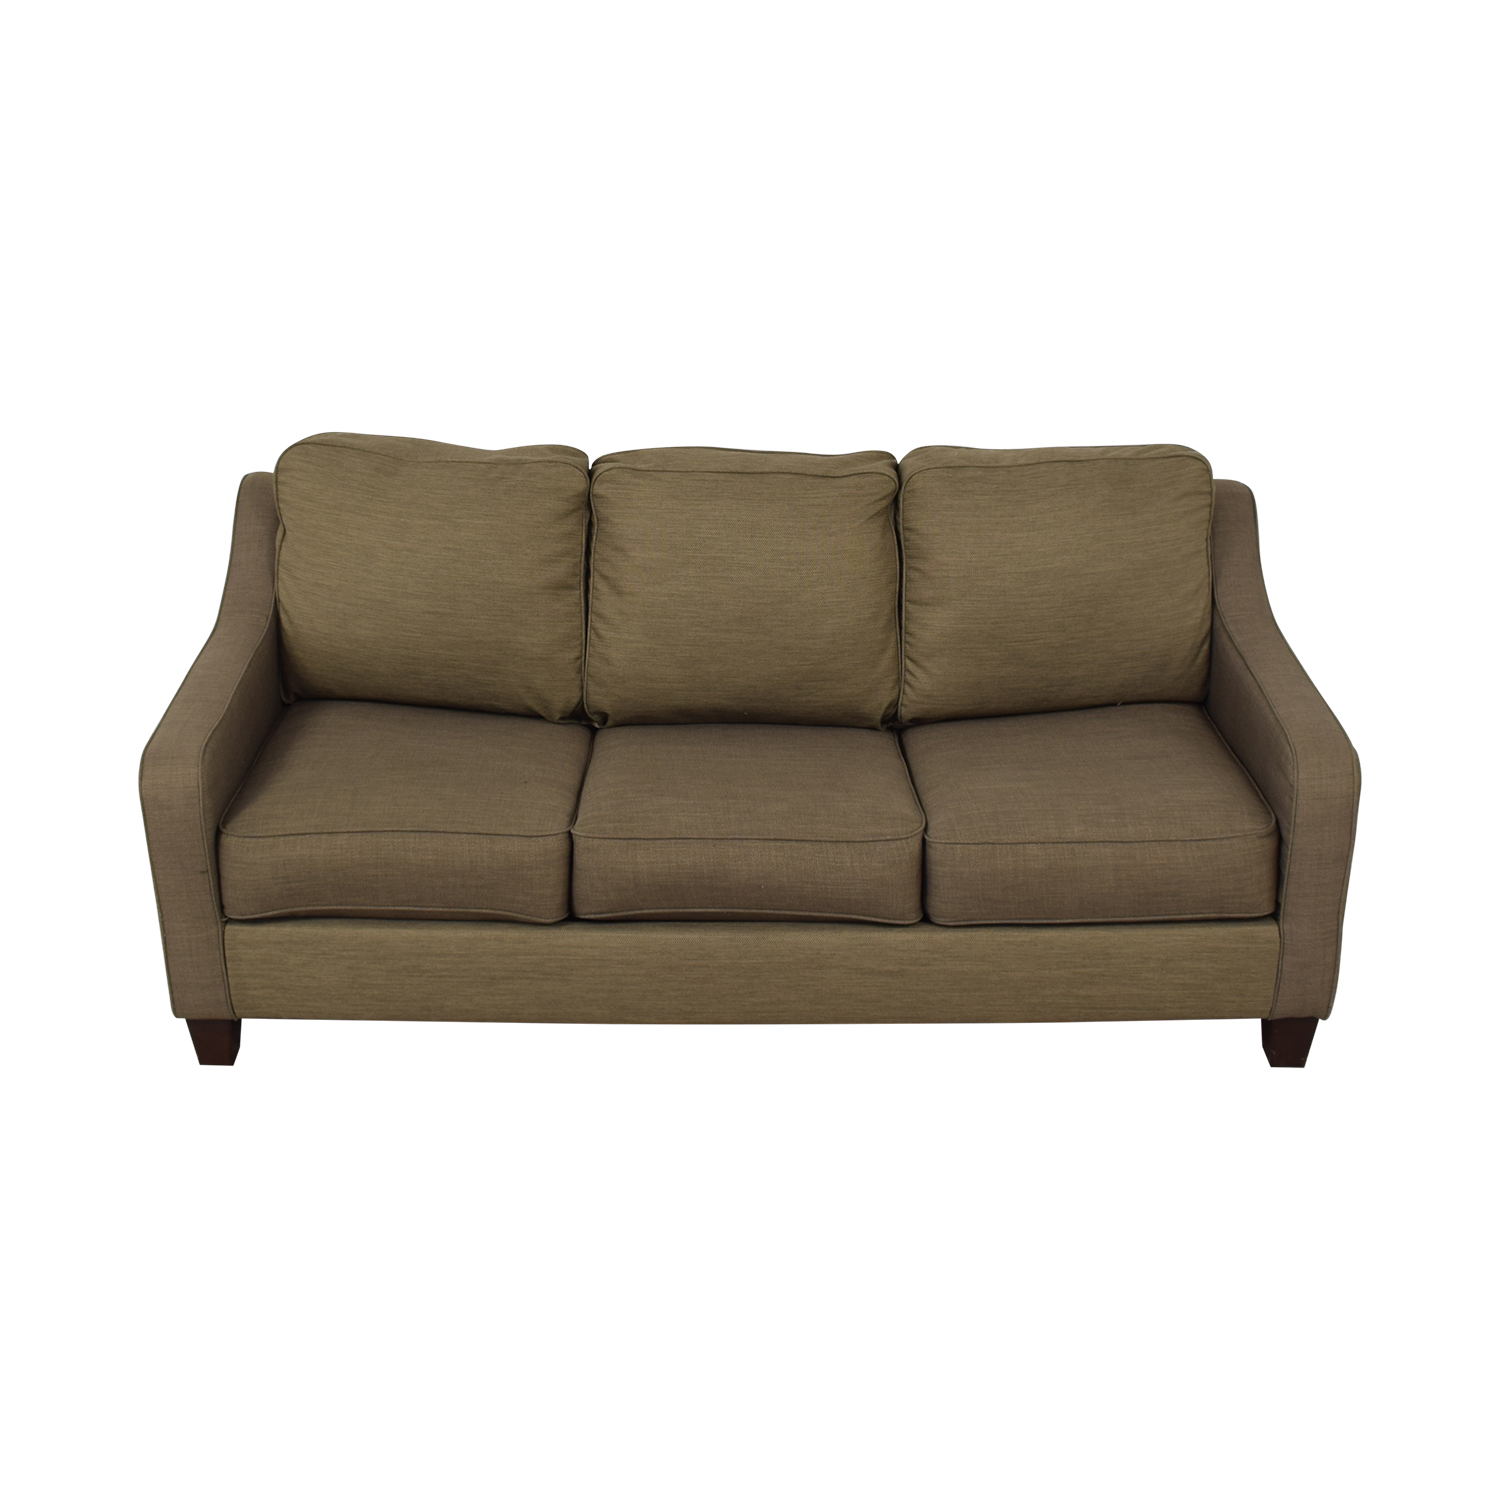 Jennifer Furniture Convertible Sofa Queen Bed / Sofas